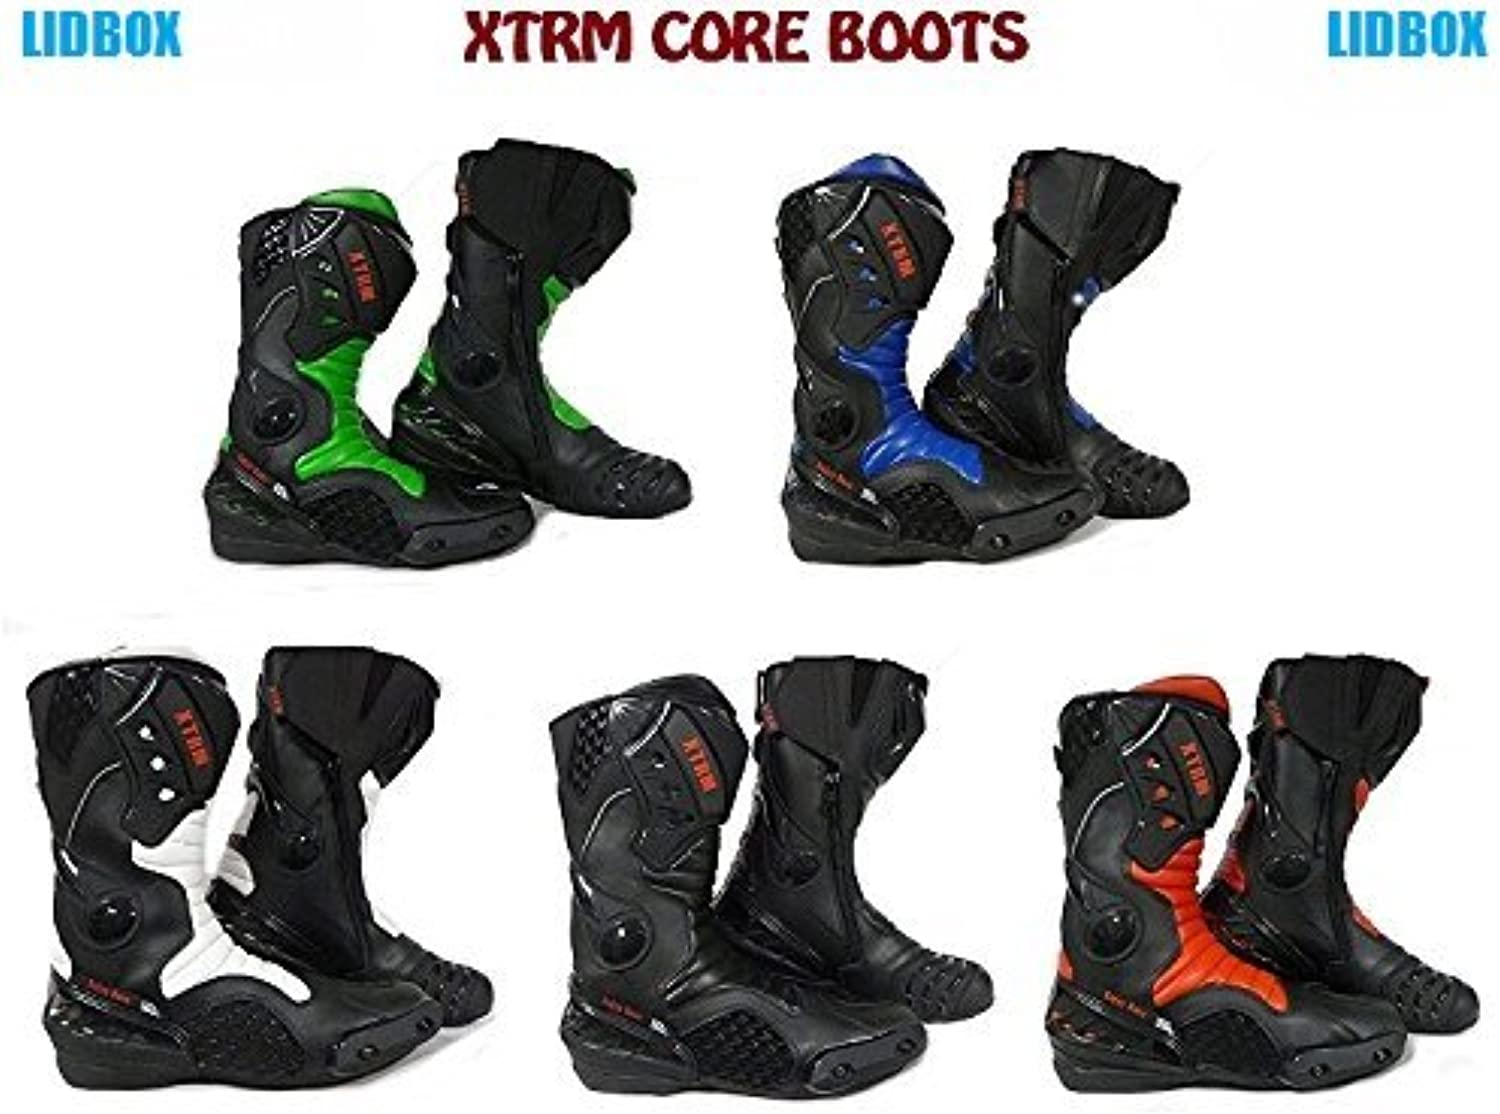 XTRM Motorcycle Boots Core Motorbike Touring Boots CE Approved Sports shoes New for 2019